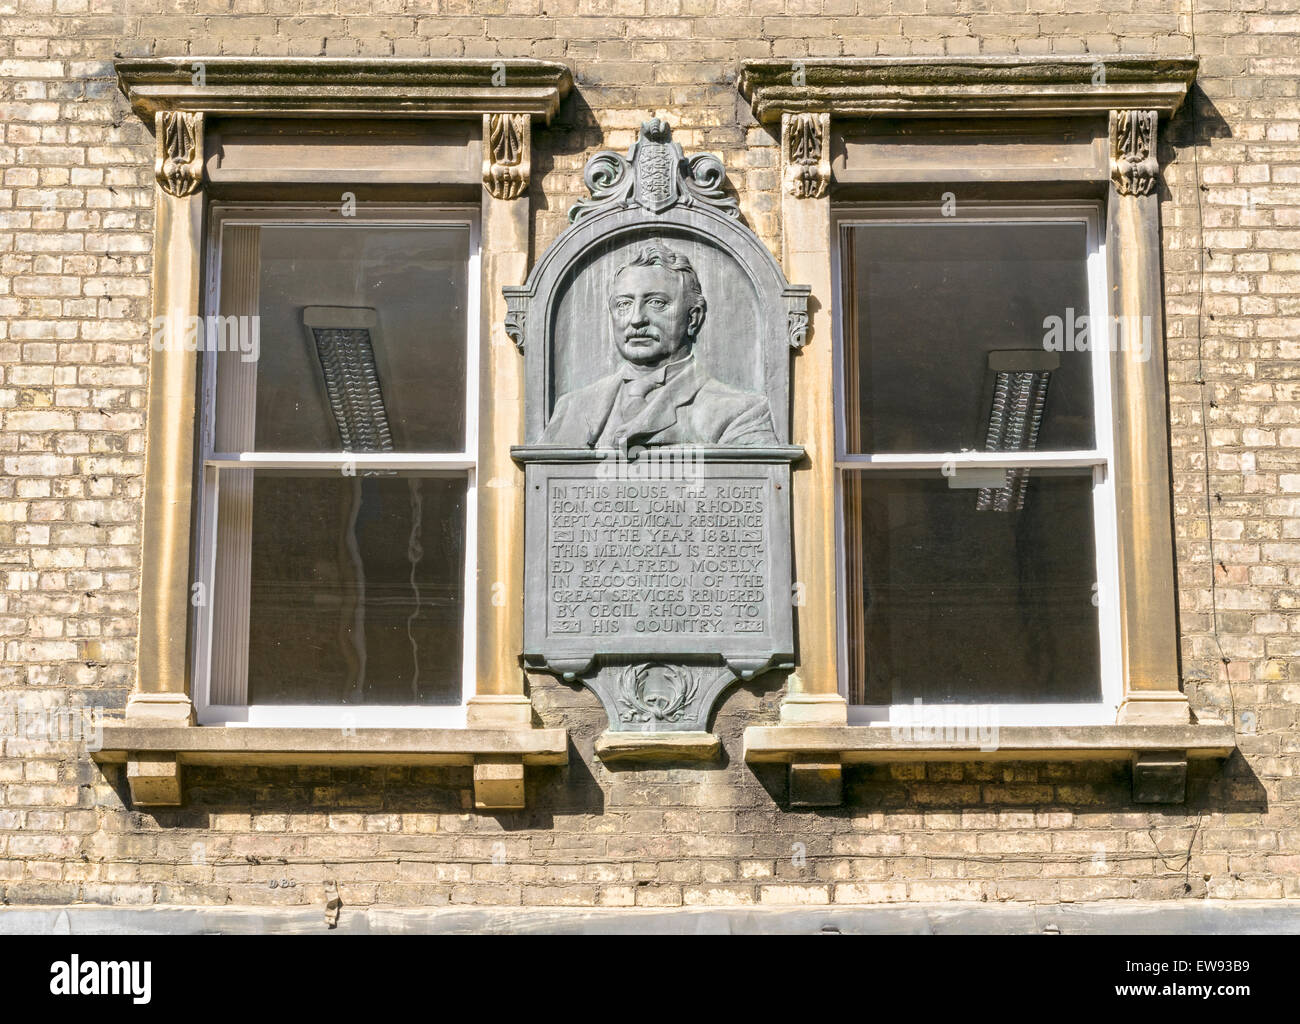 OXFORD CITY PLAQUE TO CECIL RHODES IN KING EDWARD STREET - Stock Image